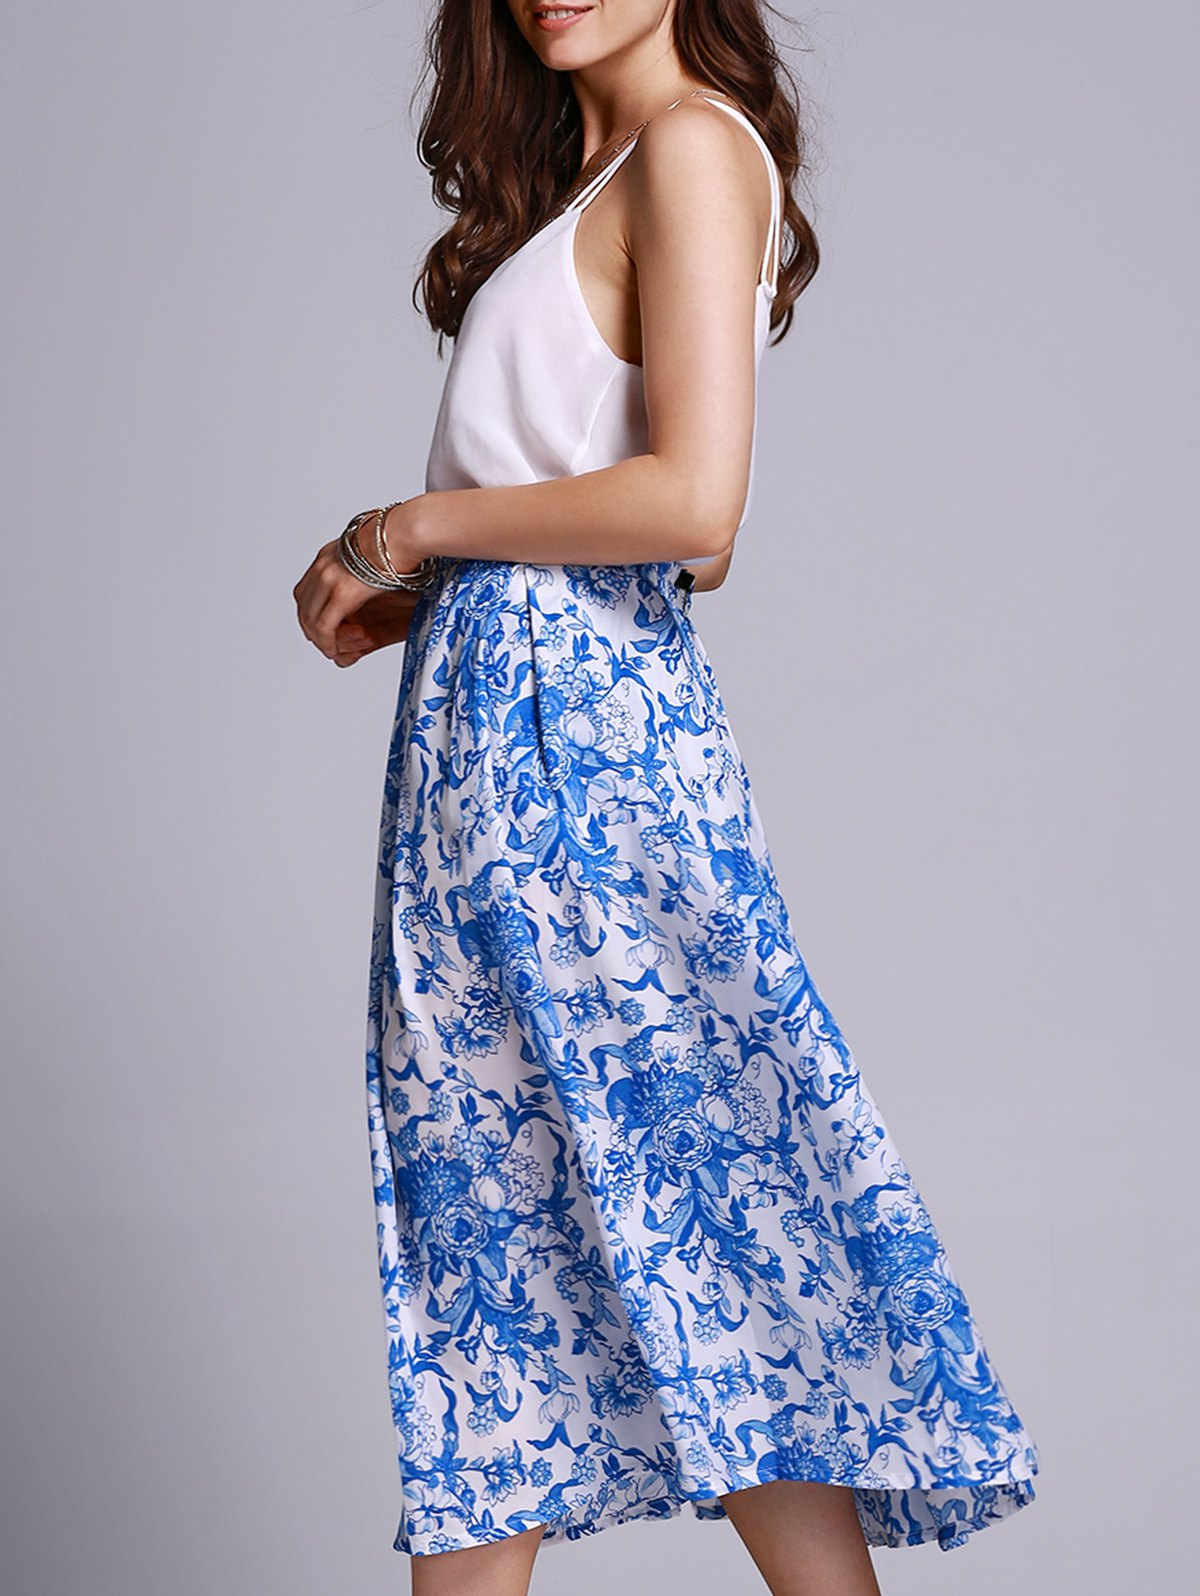 High Waisted Blue Floral Print Skirt